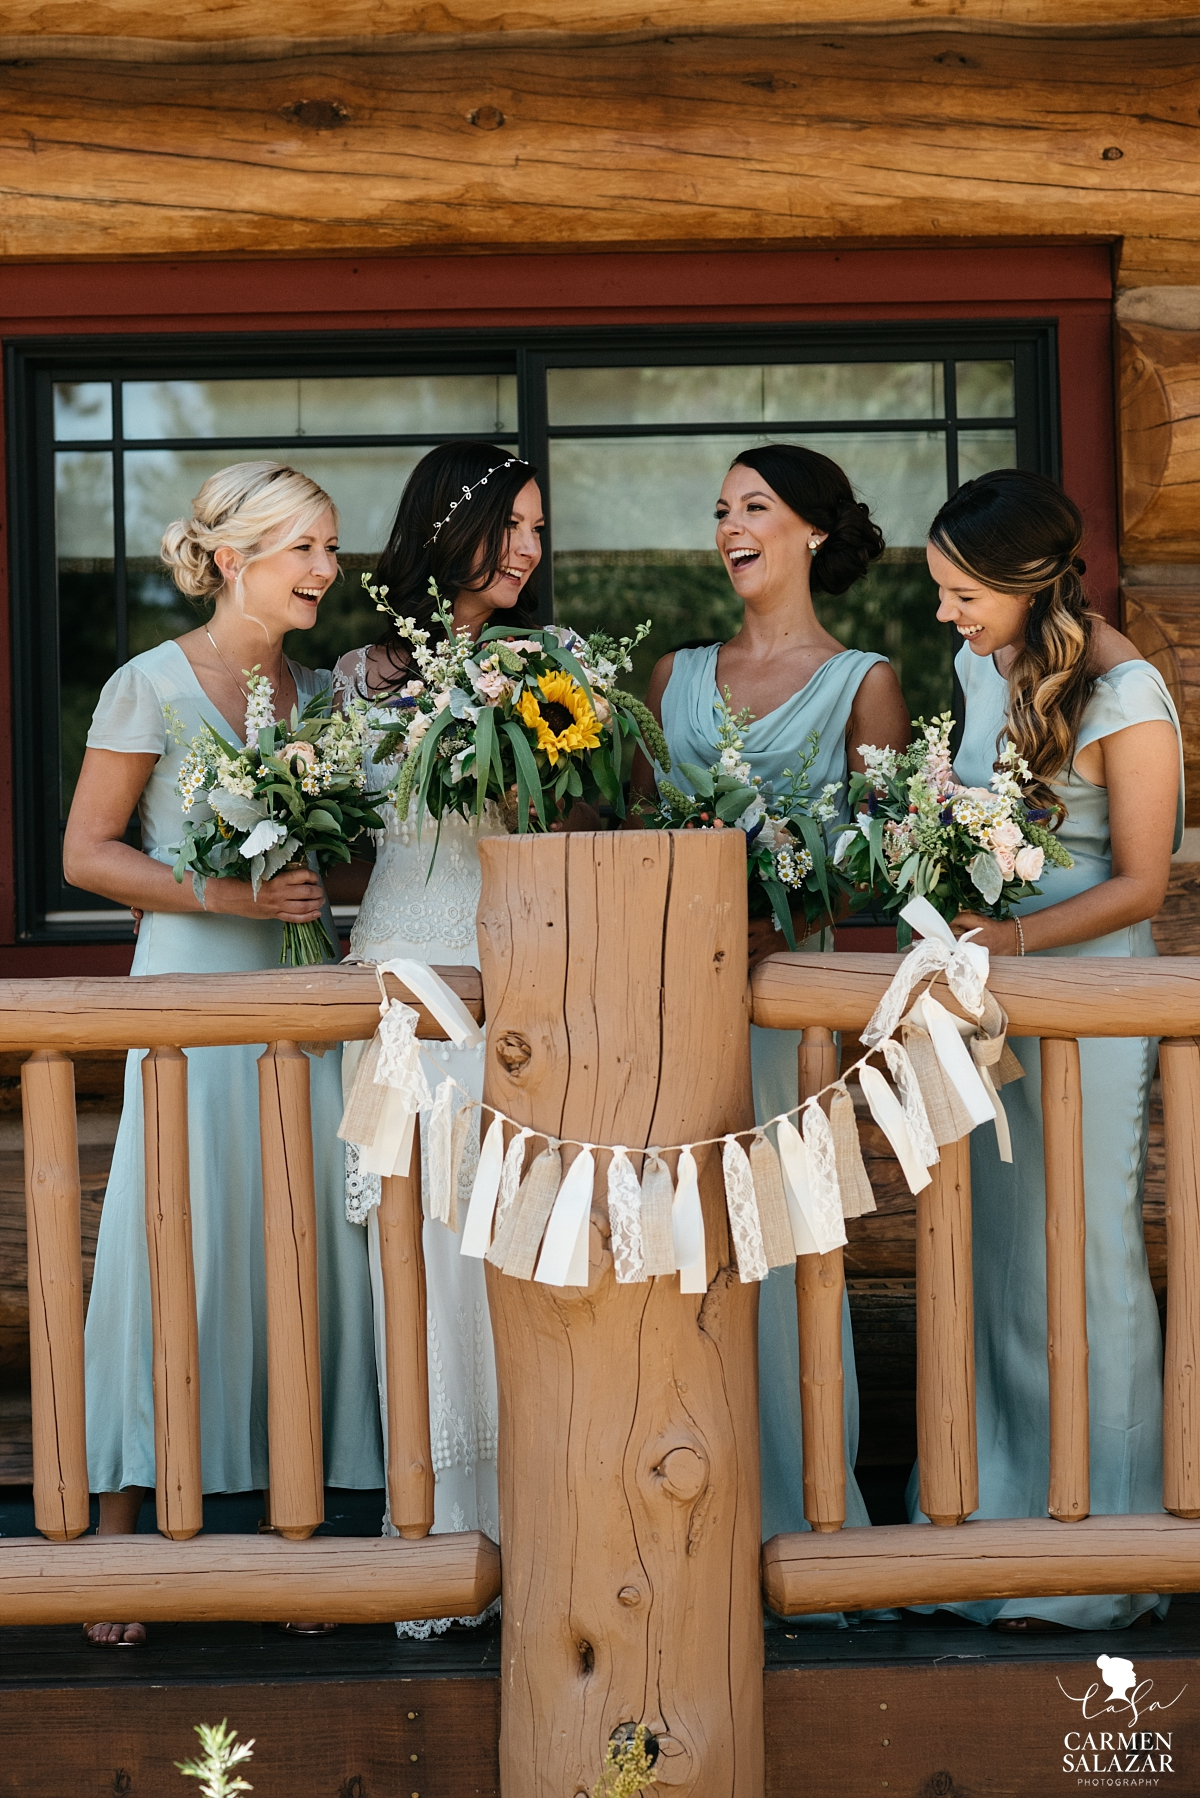 Bridal party hanging out at The Hideout cabin - Carmen Salazar